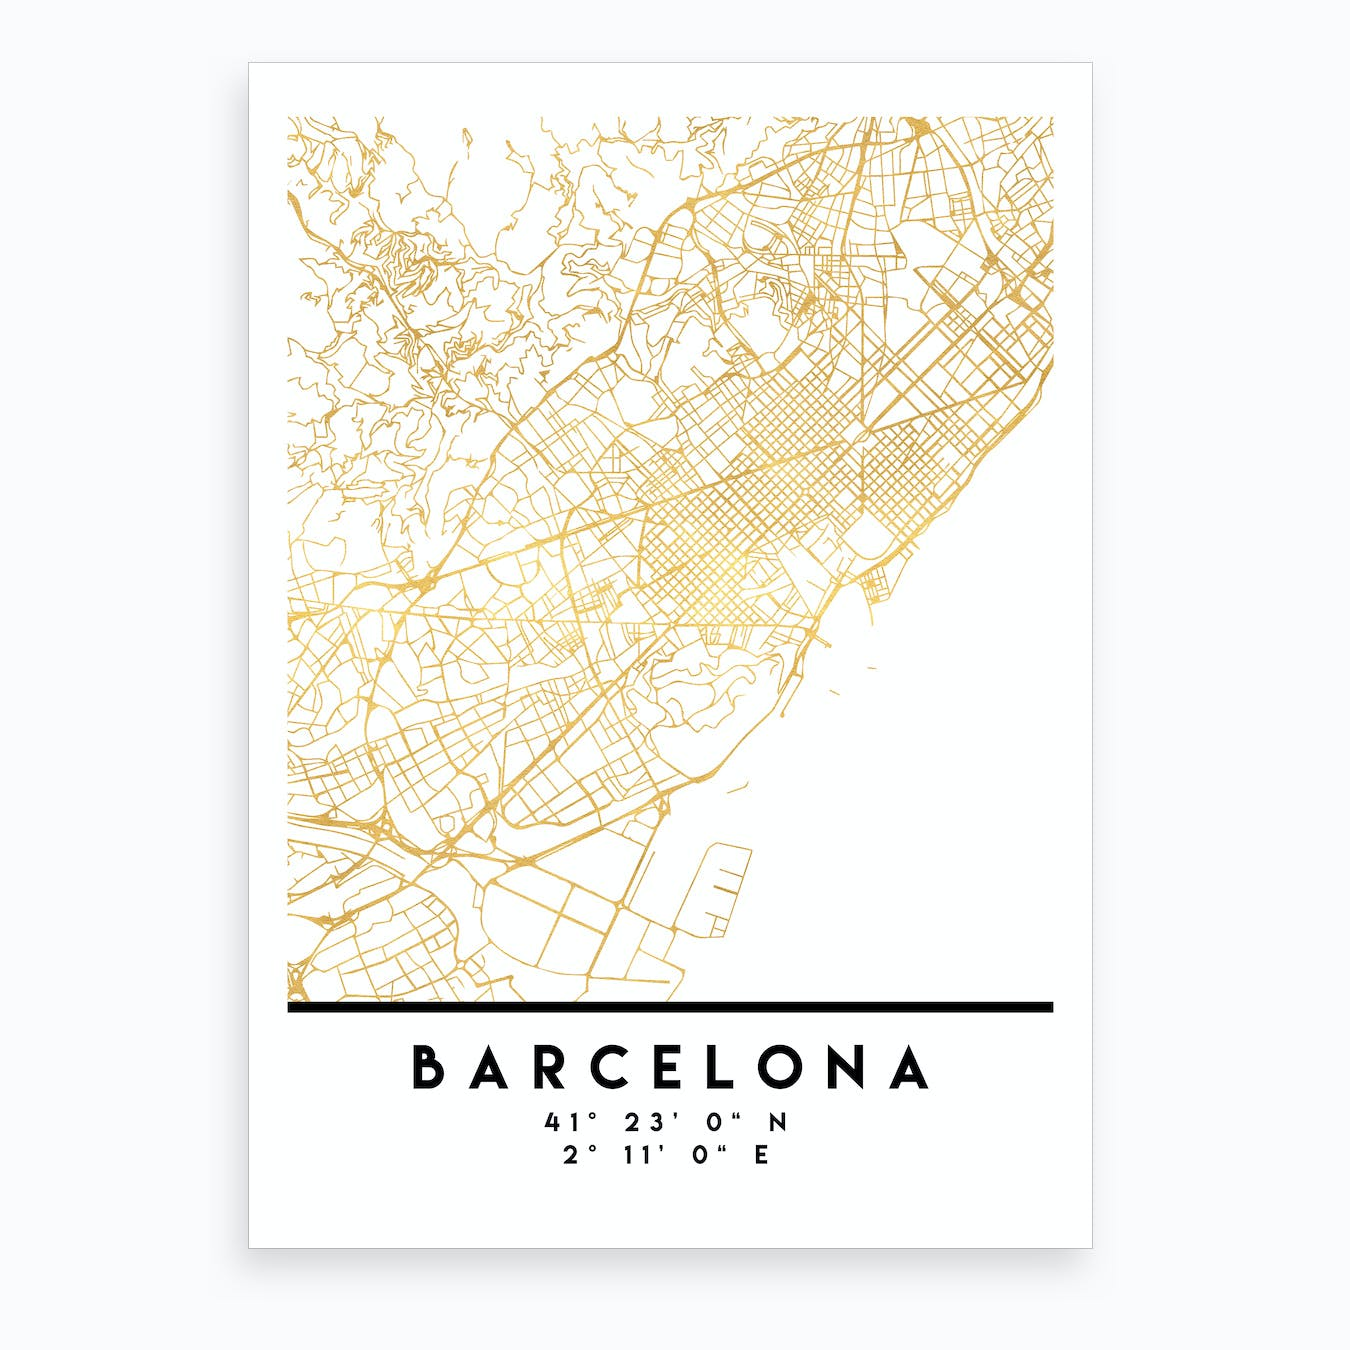 Barcelona In Spain Map.Barcelona Spain City Street Map By Deificus Fy